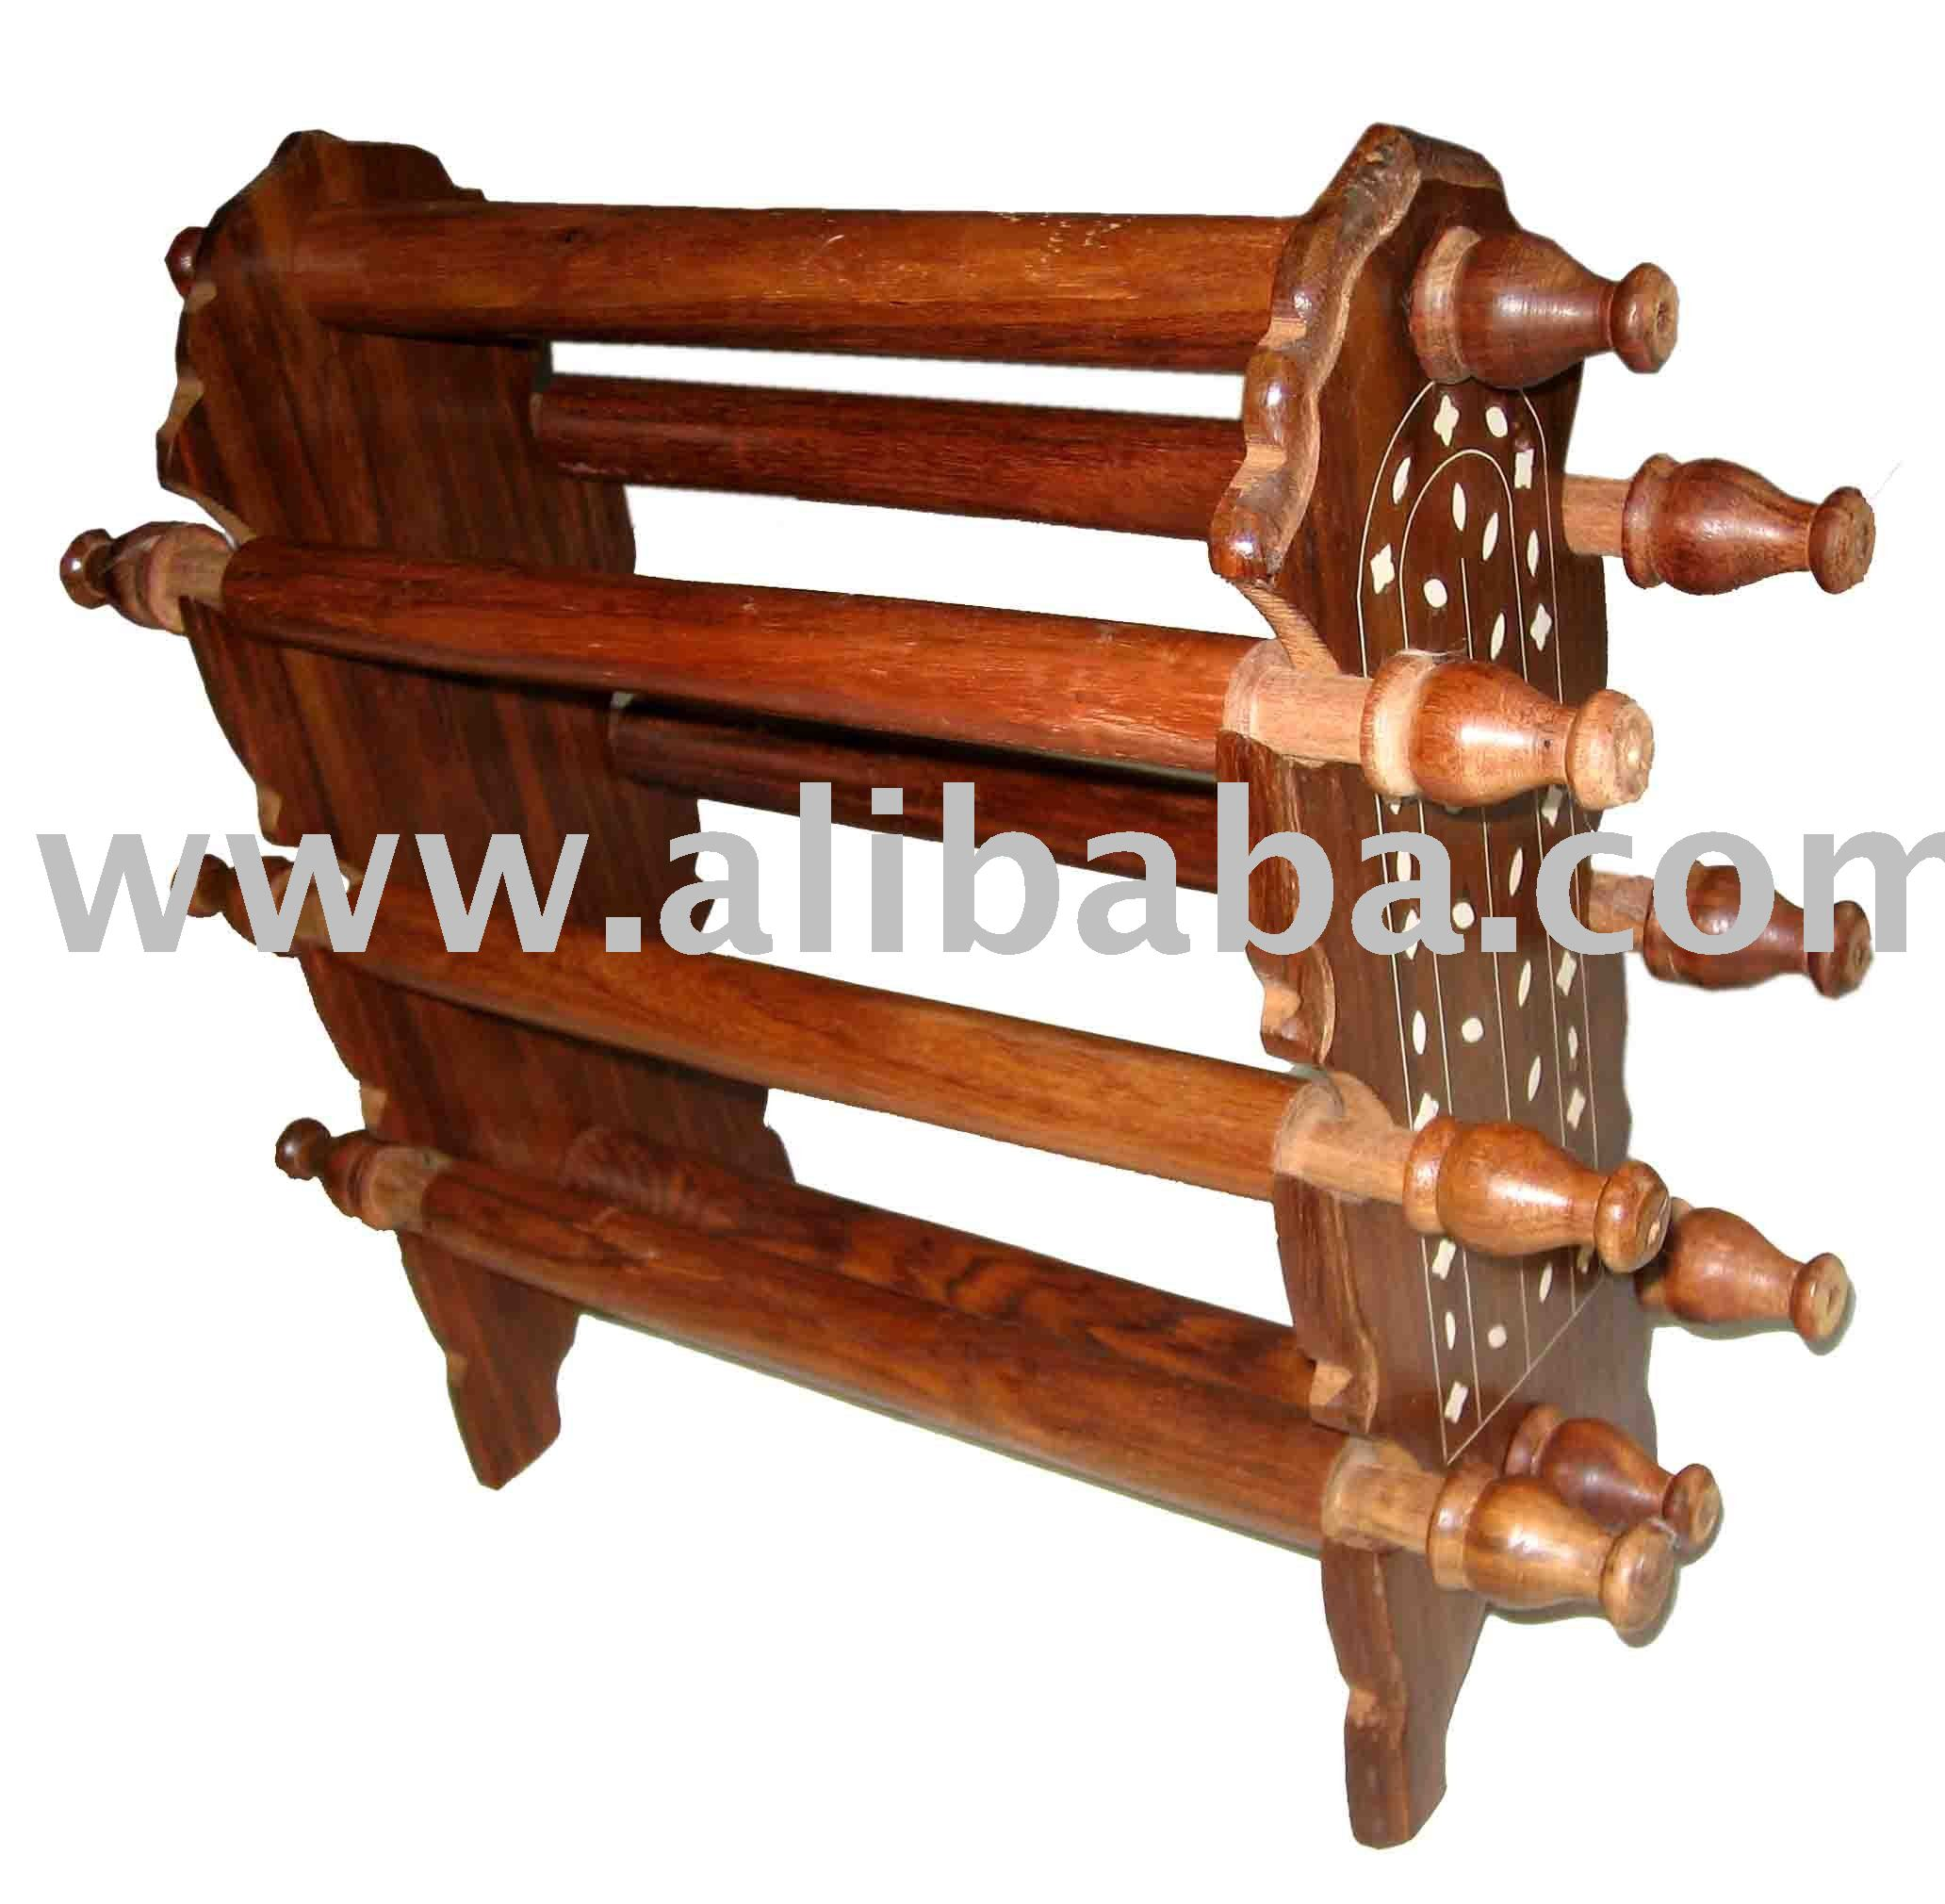 Bangle Stand - Buy Wooden Bangles Stands Bangle Stand Product on ...